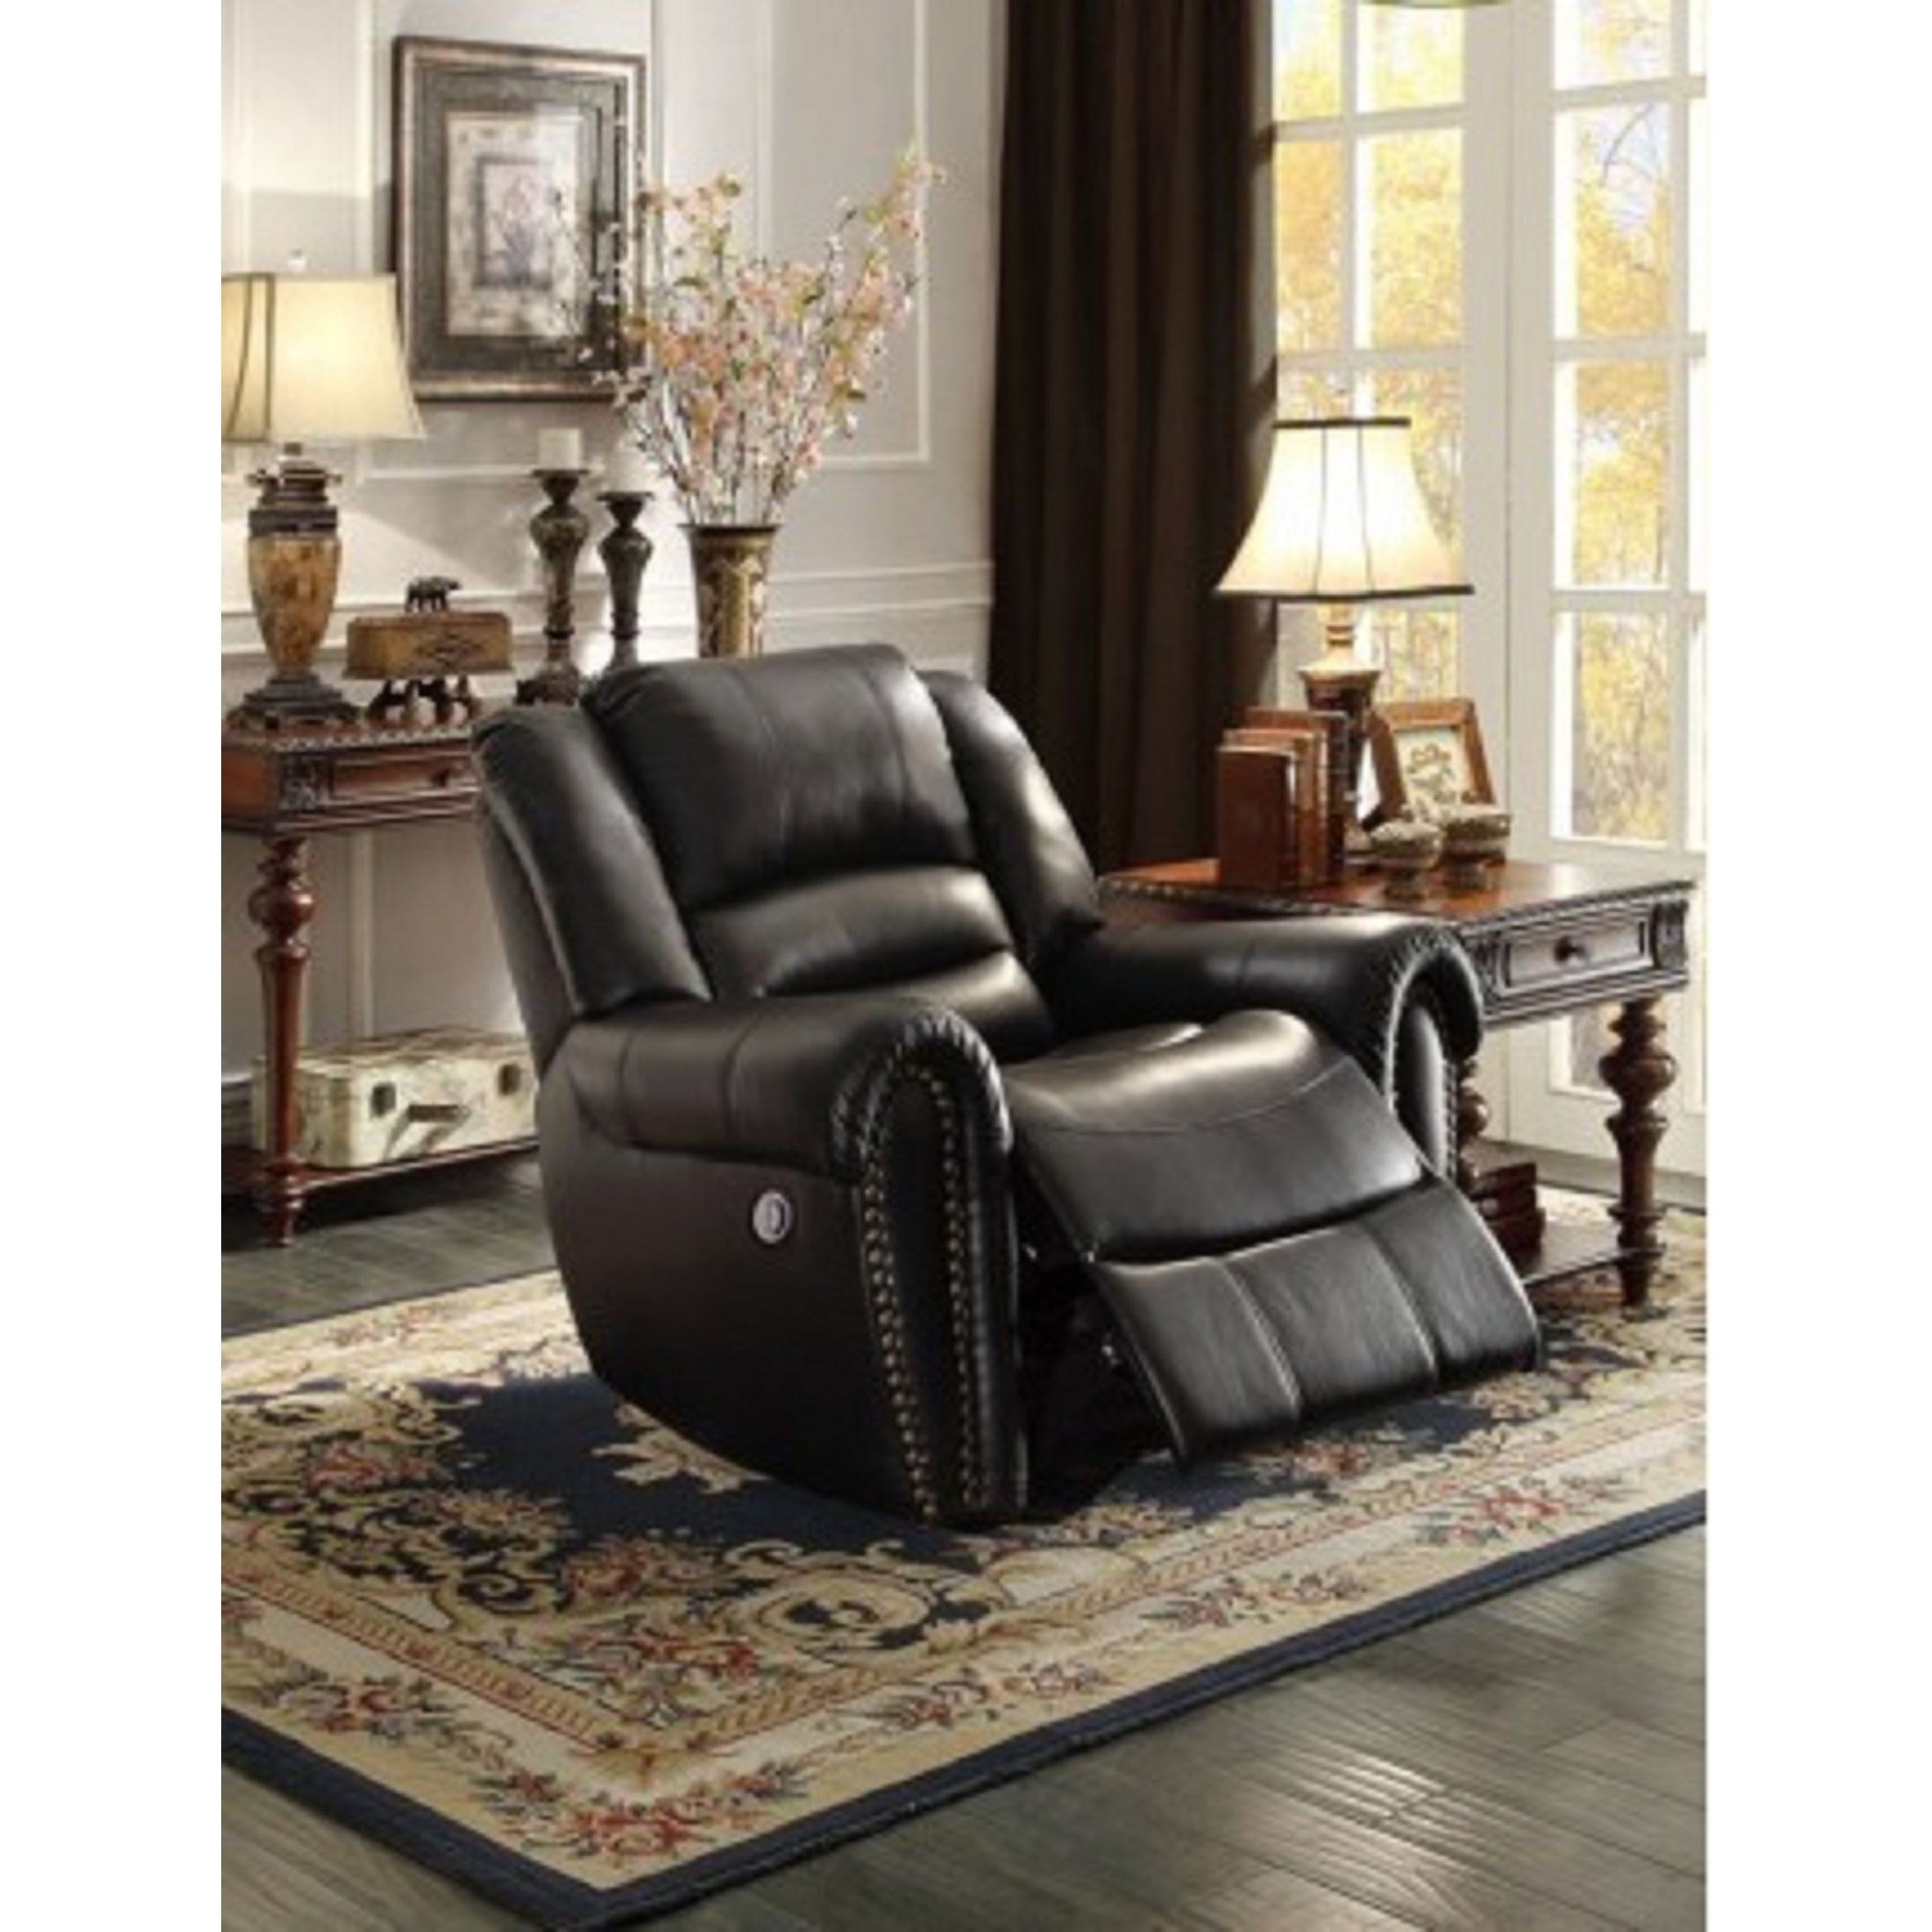 Center Hill Gliding Recliner by Homelegance at Carolina Direct